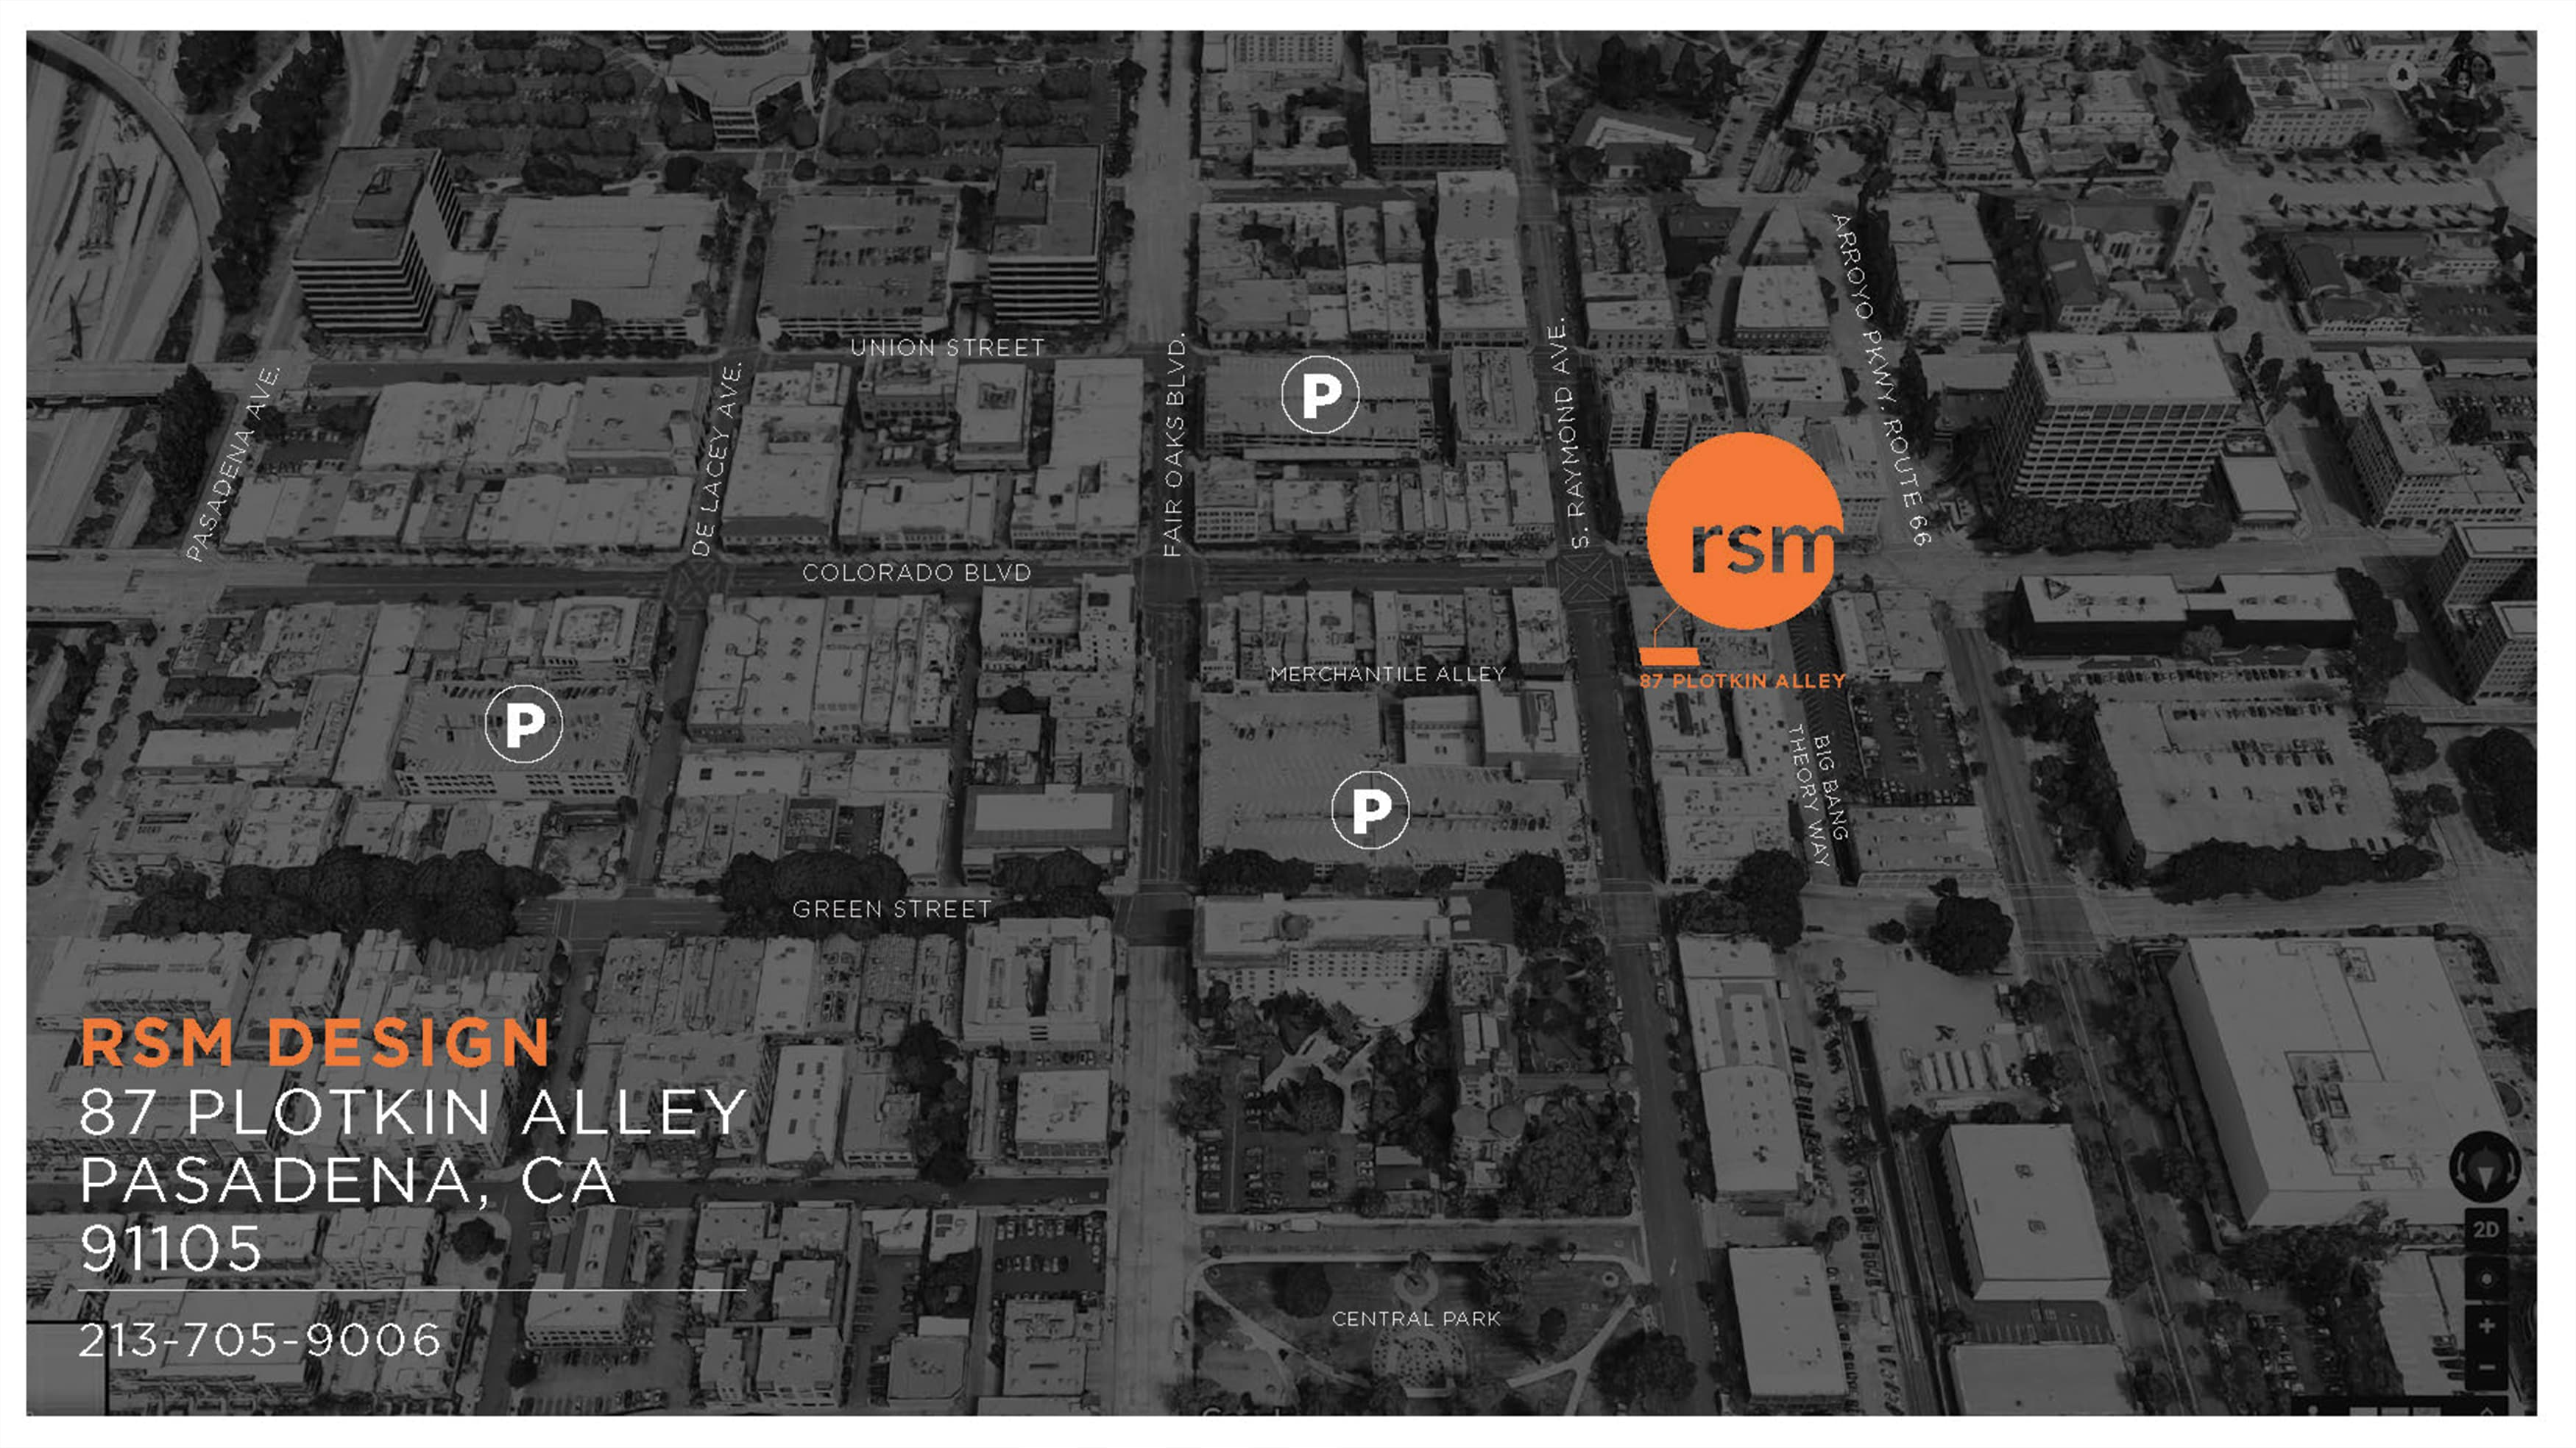 A map showing the location of the new Los Angeles office of RSM Design.